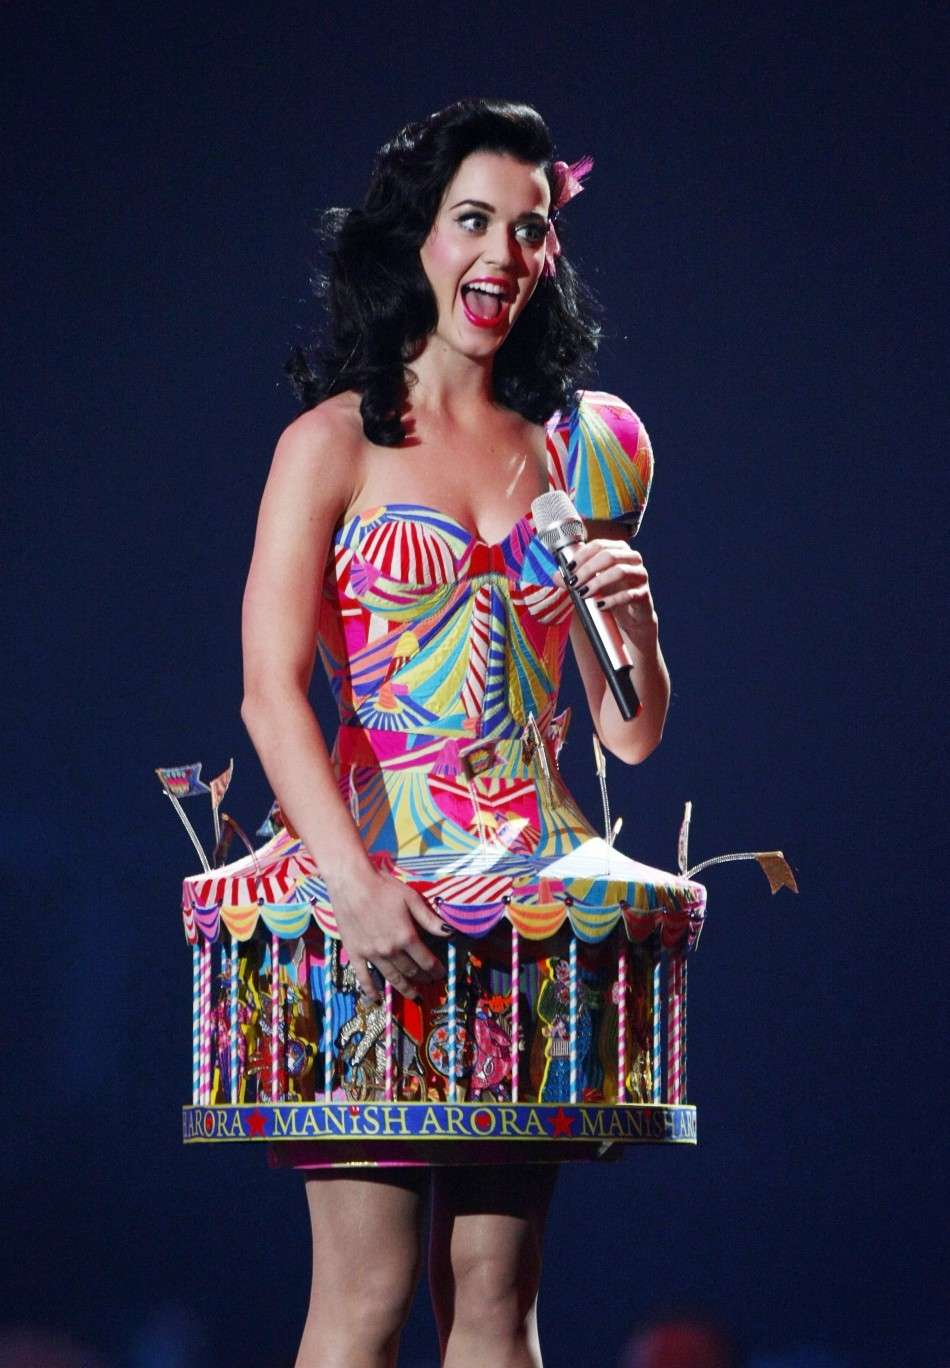 Katy Perry come una giostra